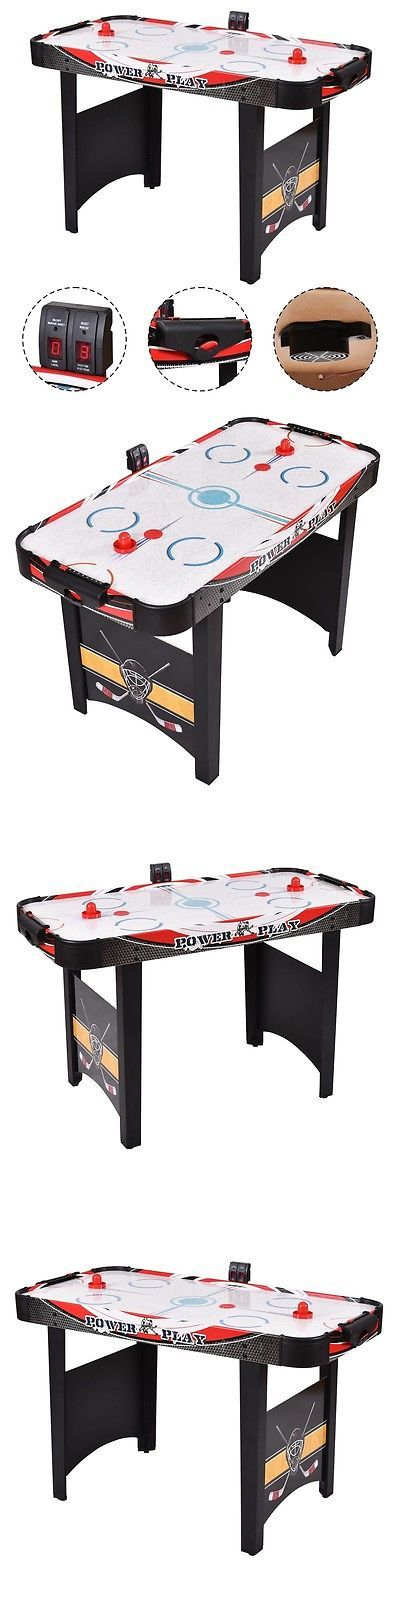 Air Hockey 36275: 48Air Powered Hockey Table Indoor Sports Game Electronic Scoring Red Puck Kids BUY IT NOW ONLY: $72.38